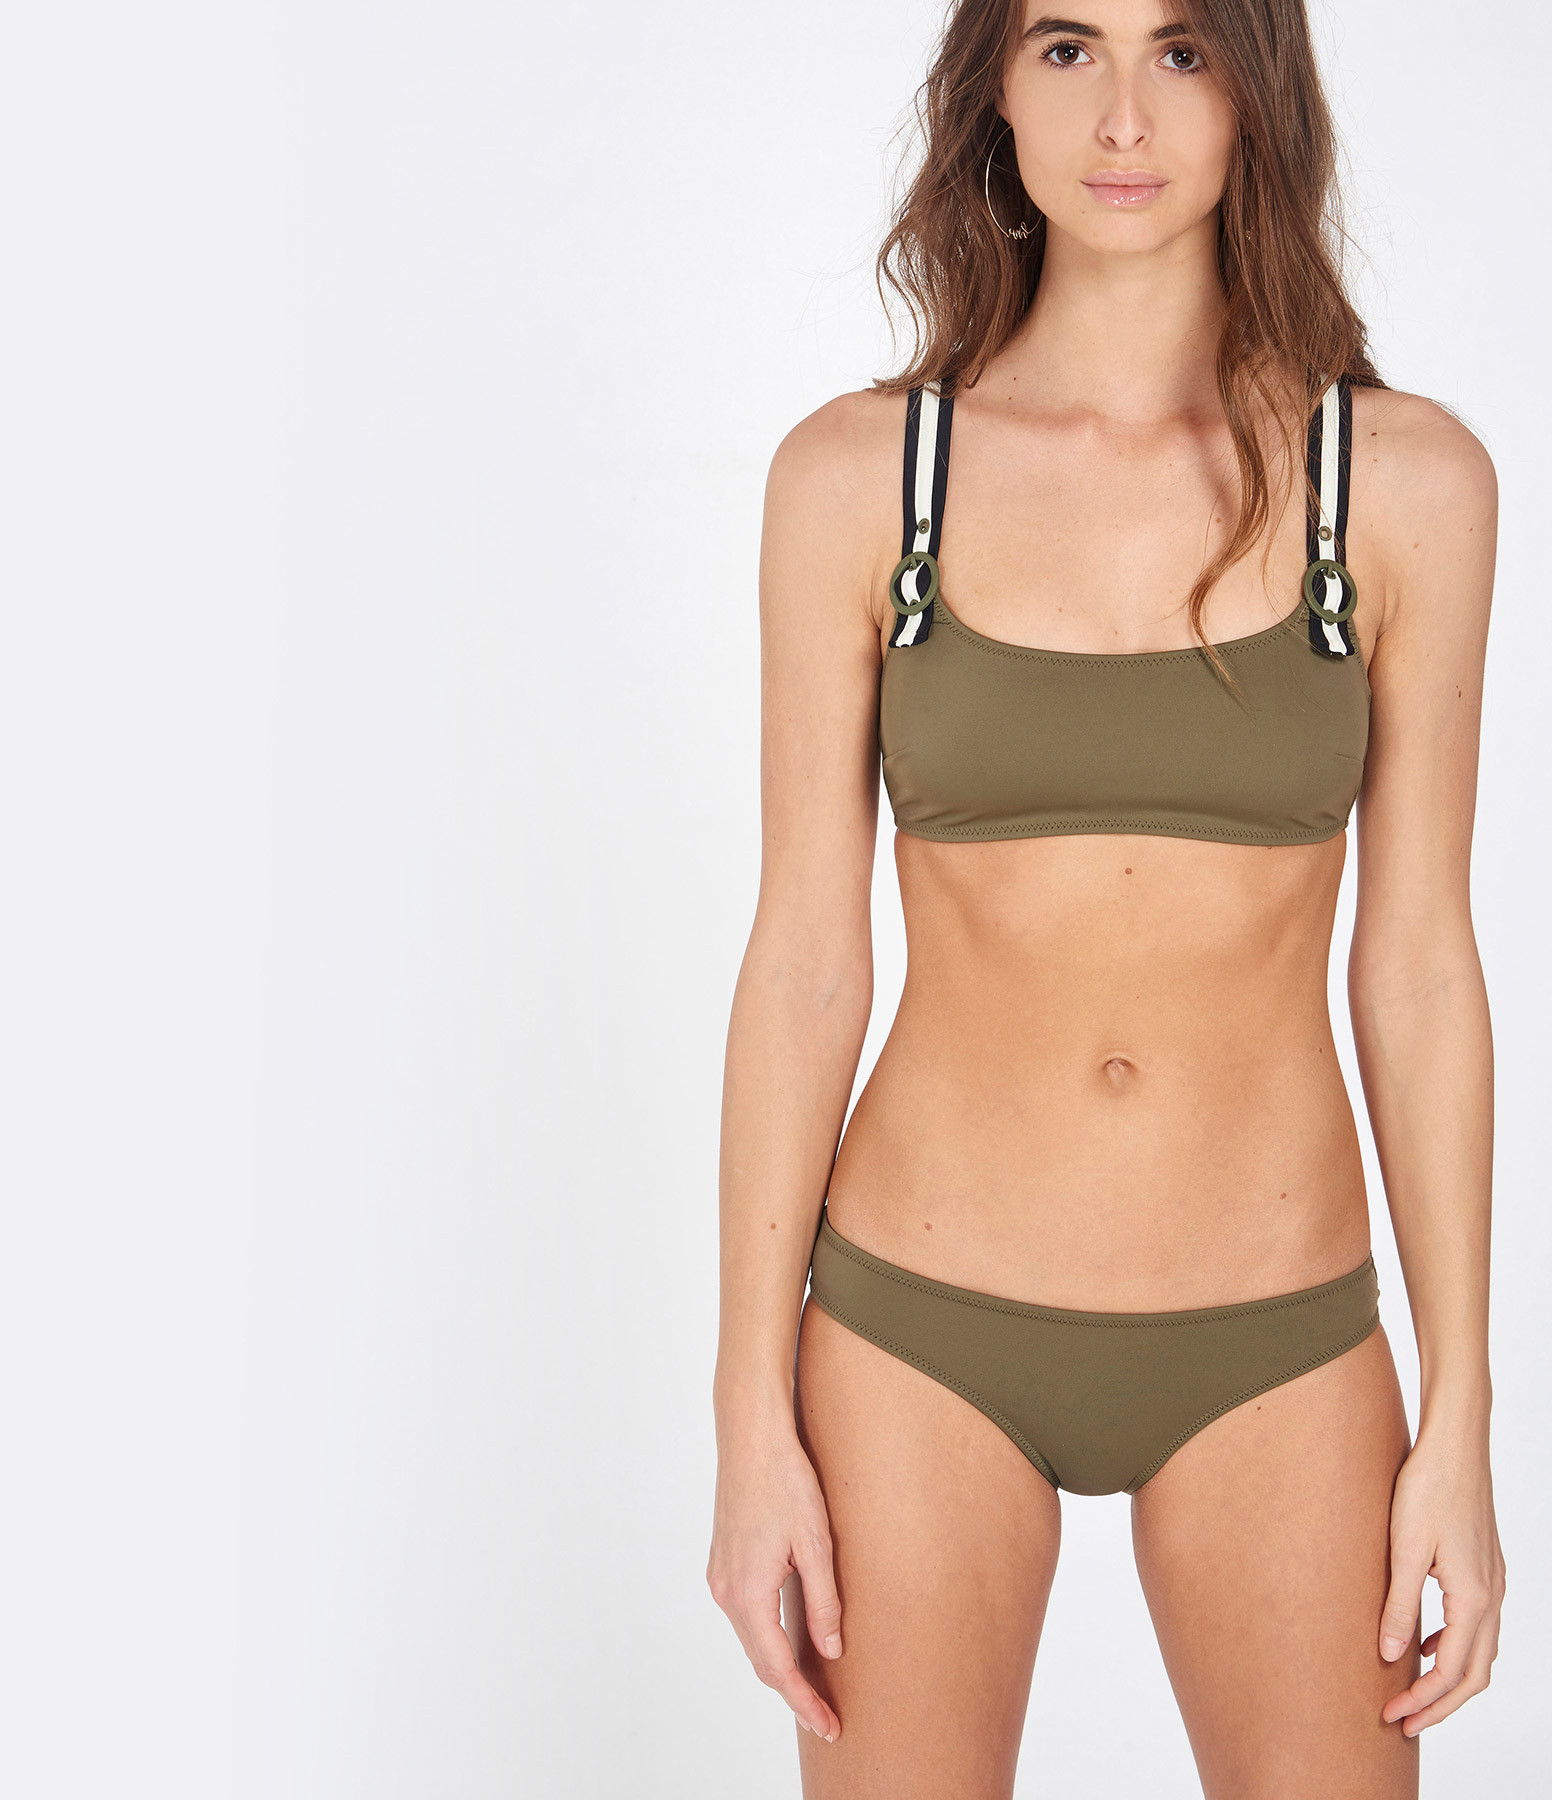 SOLID & STRIPED - Haut de Maillot de Bain The Evelyn Olive